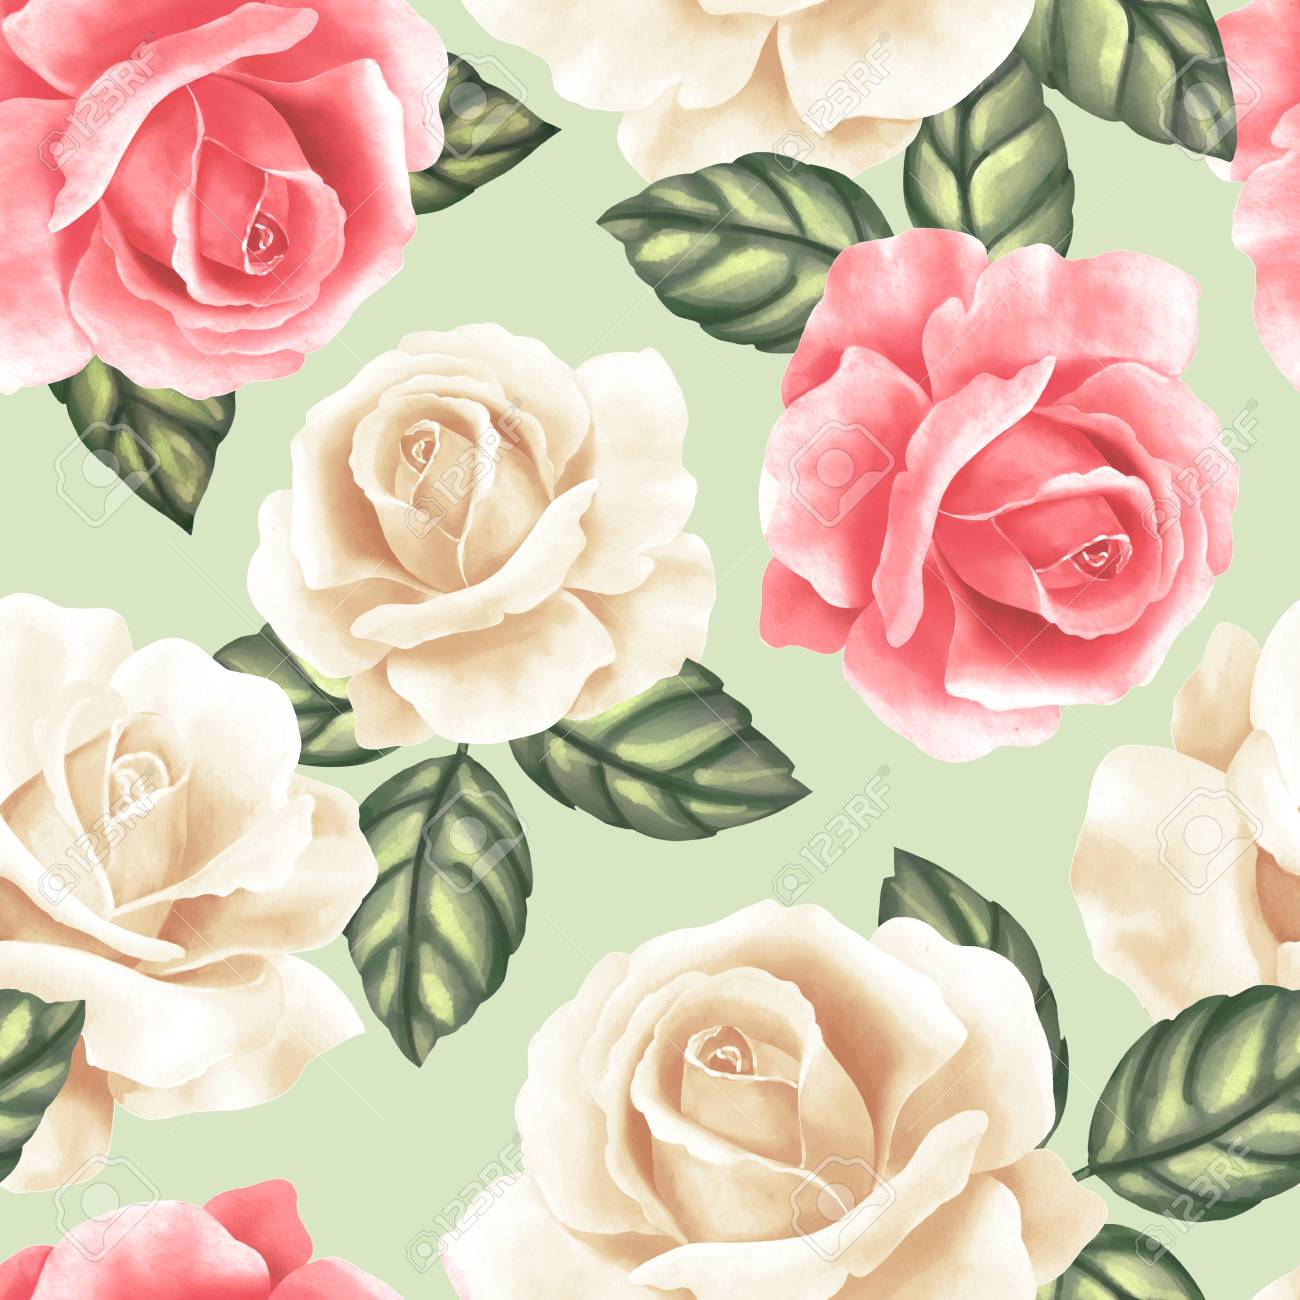 Seamless pattern with flowers and leaves. Delicate floral background with roses - 120180897